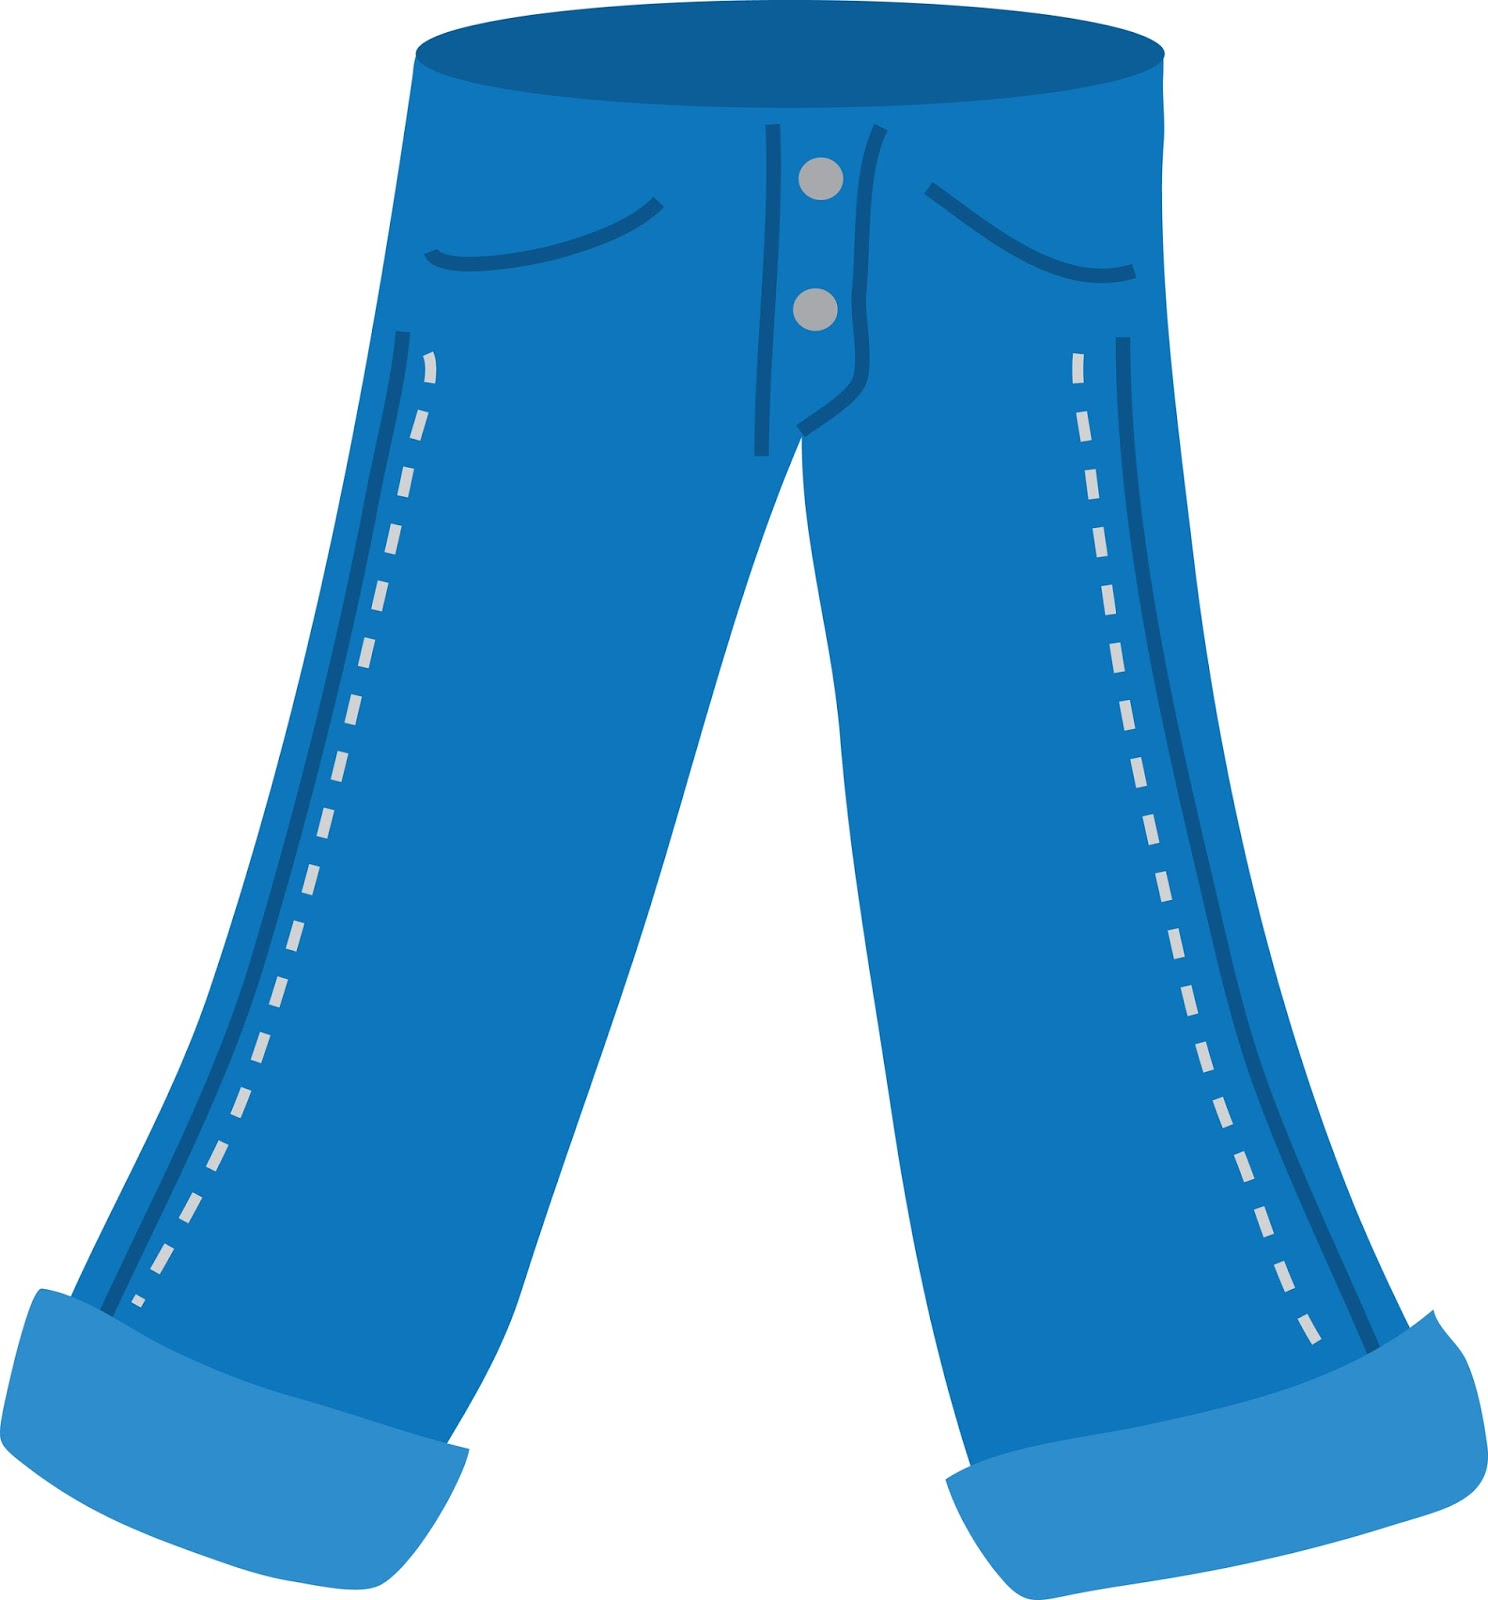 red jeans clipart - photo #8